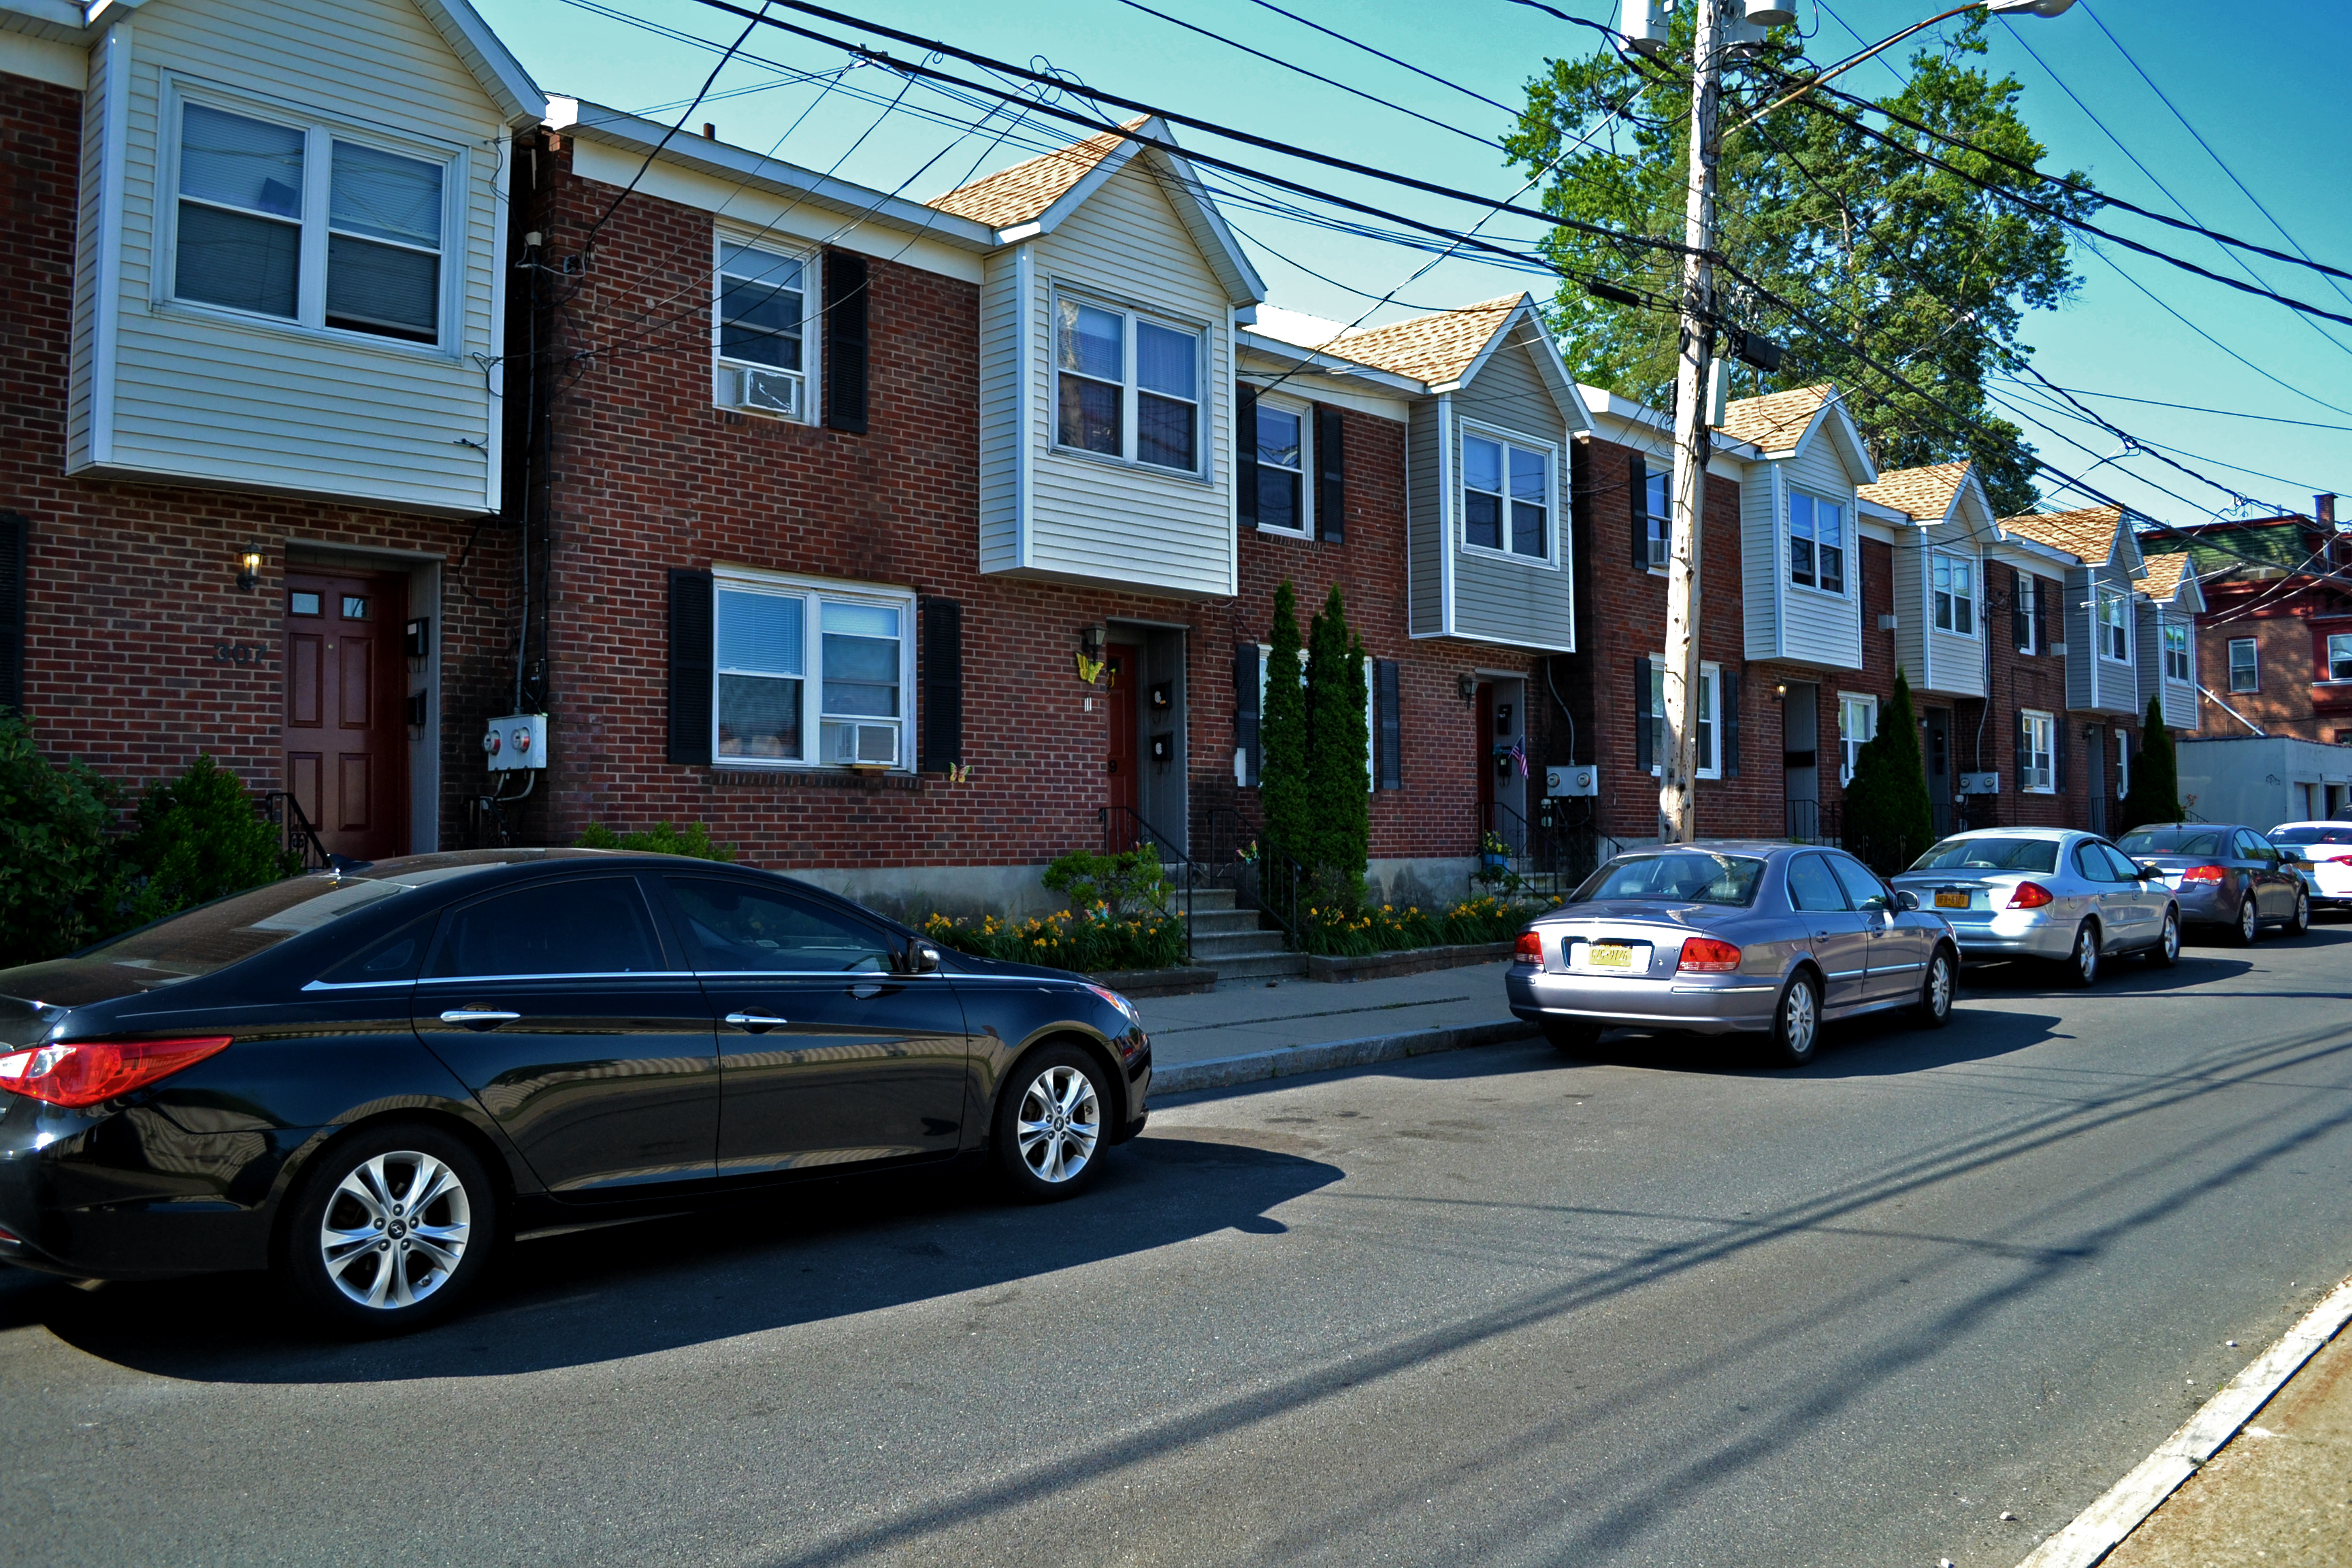 Transitional Housing_Street View Edited